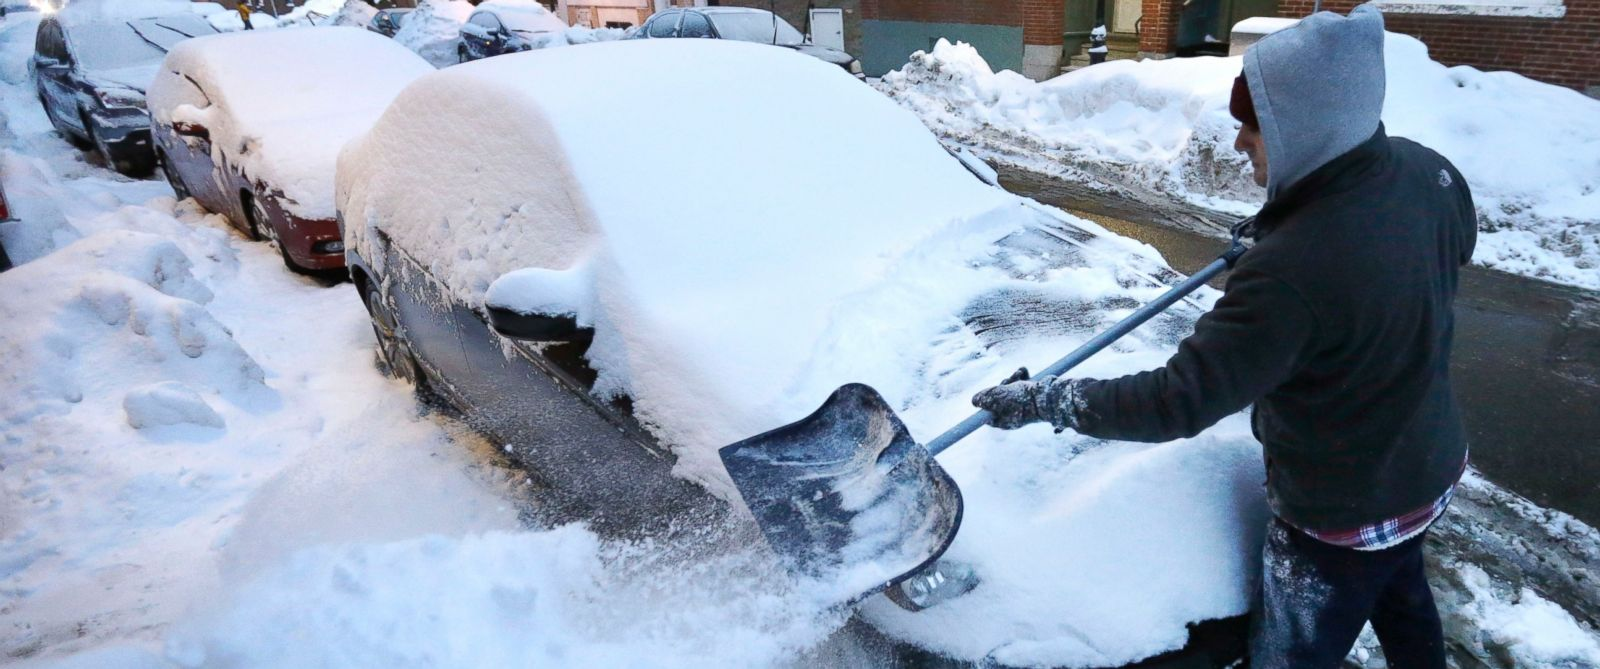 PHOTO: Alex Ranere, of Boston, uses a shovel to remove snow from his car, Feb. 8, 2015, in Bostons North End neighborhood.